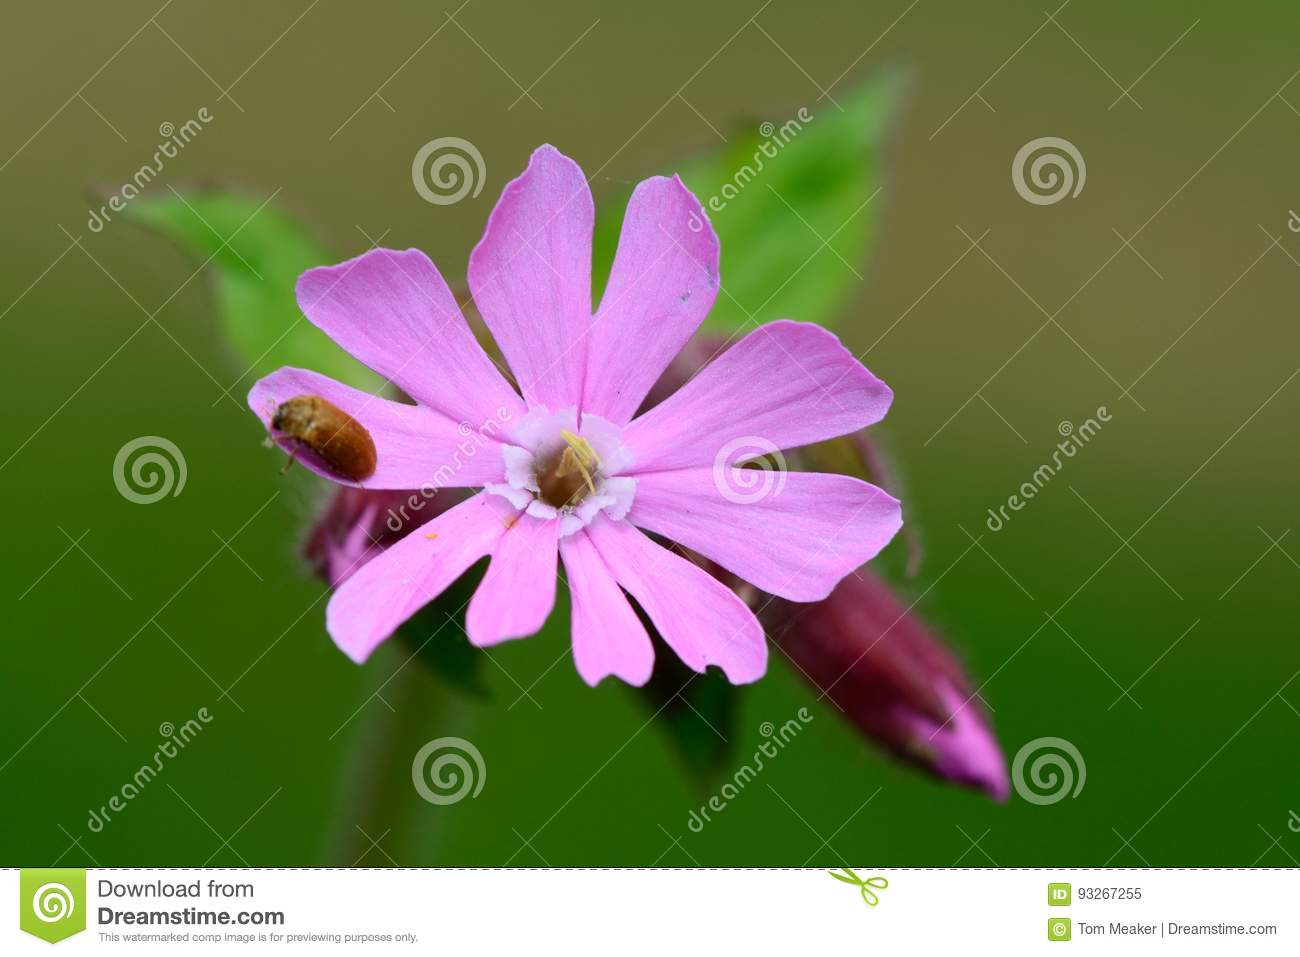 Pink campion flowers stock image image of green springtime 93267255 download pink campion flowers stock image image of green springtime 93267255 mightylinksfo